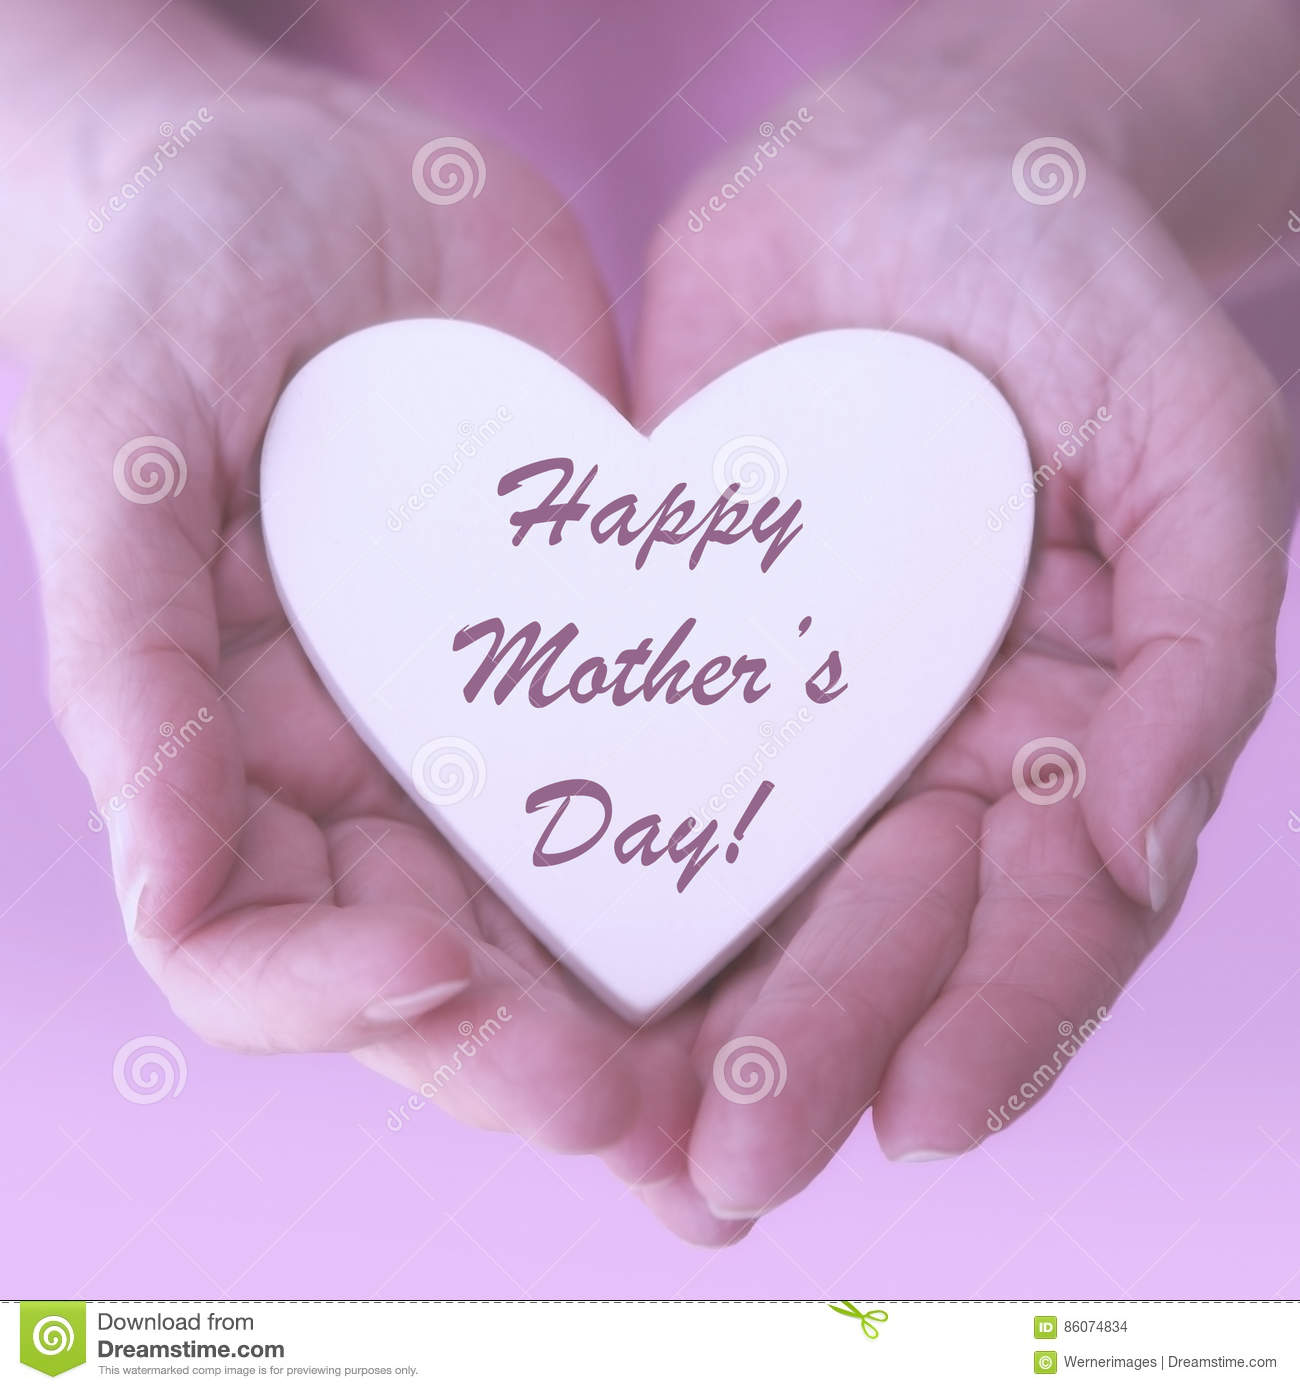 Female hands holding heart with words Happy Mothers Day